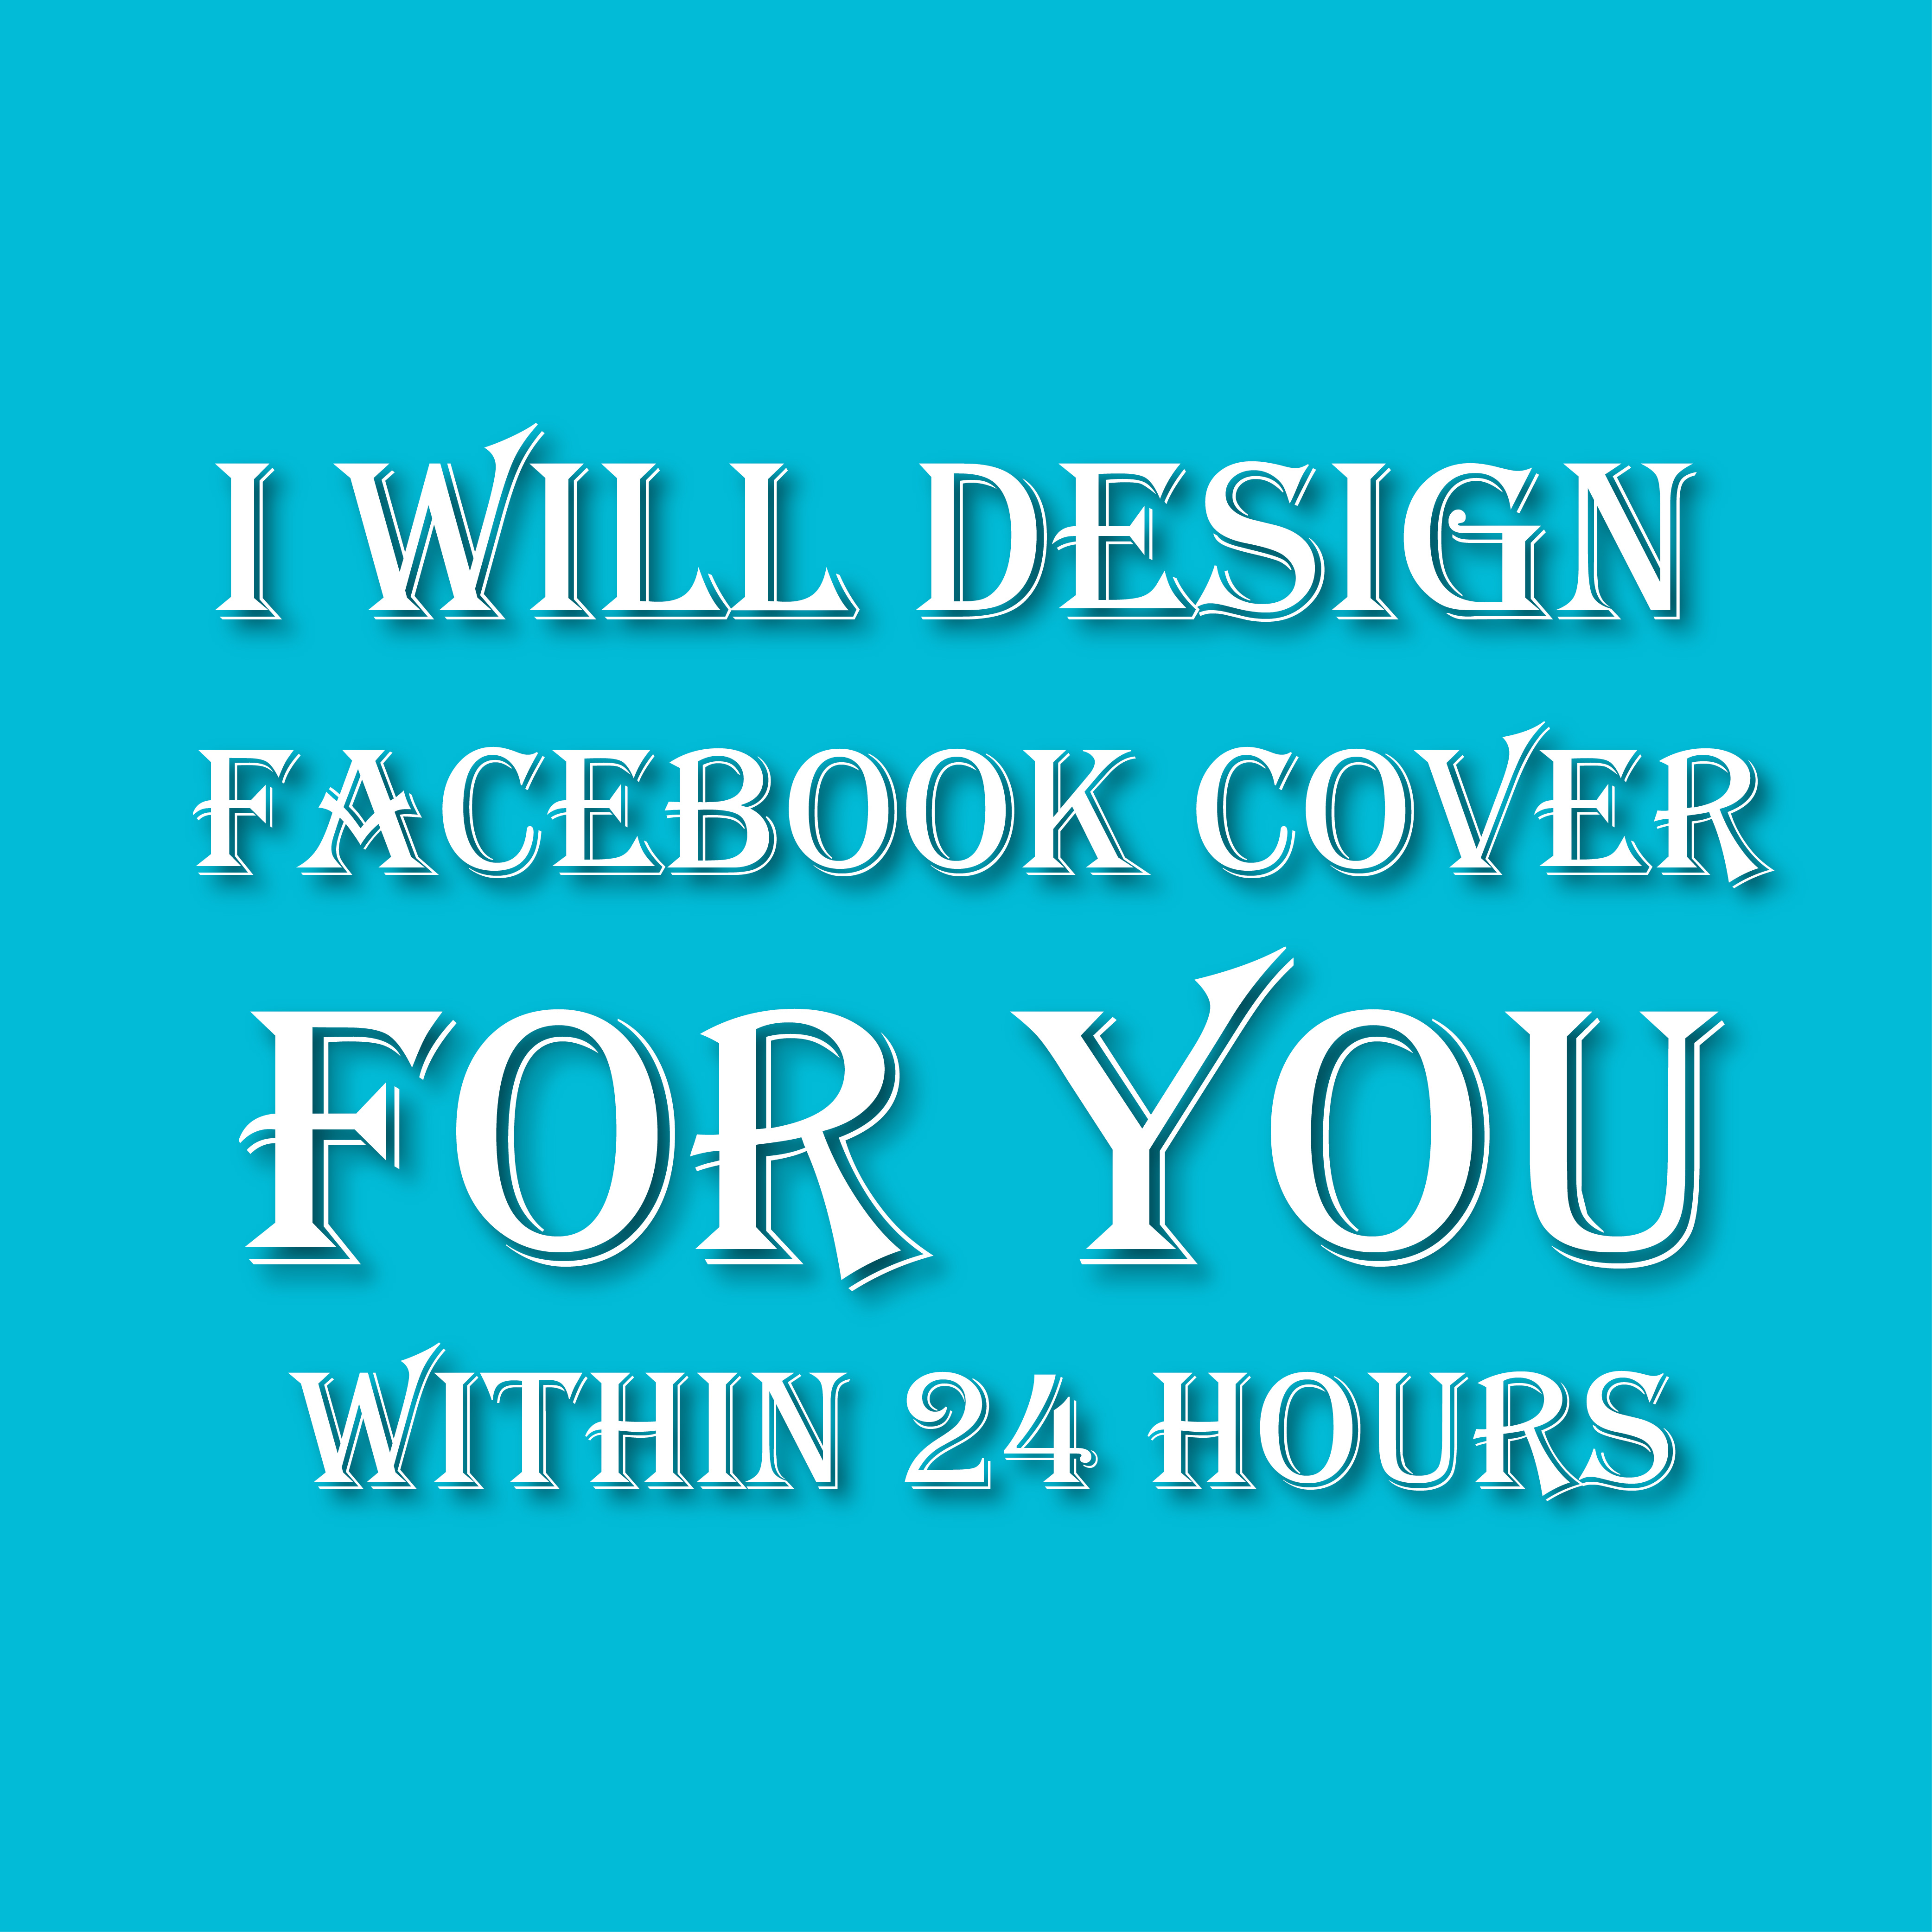 I will design Facebook cover for you within 24 hour